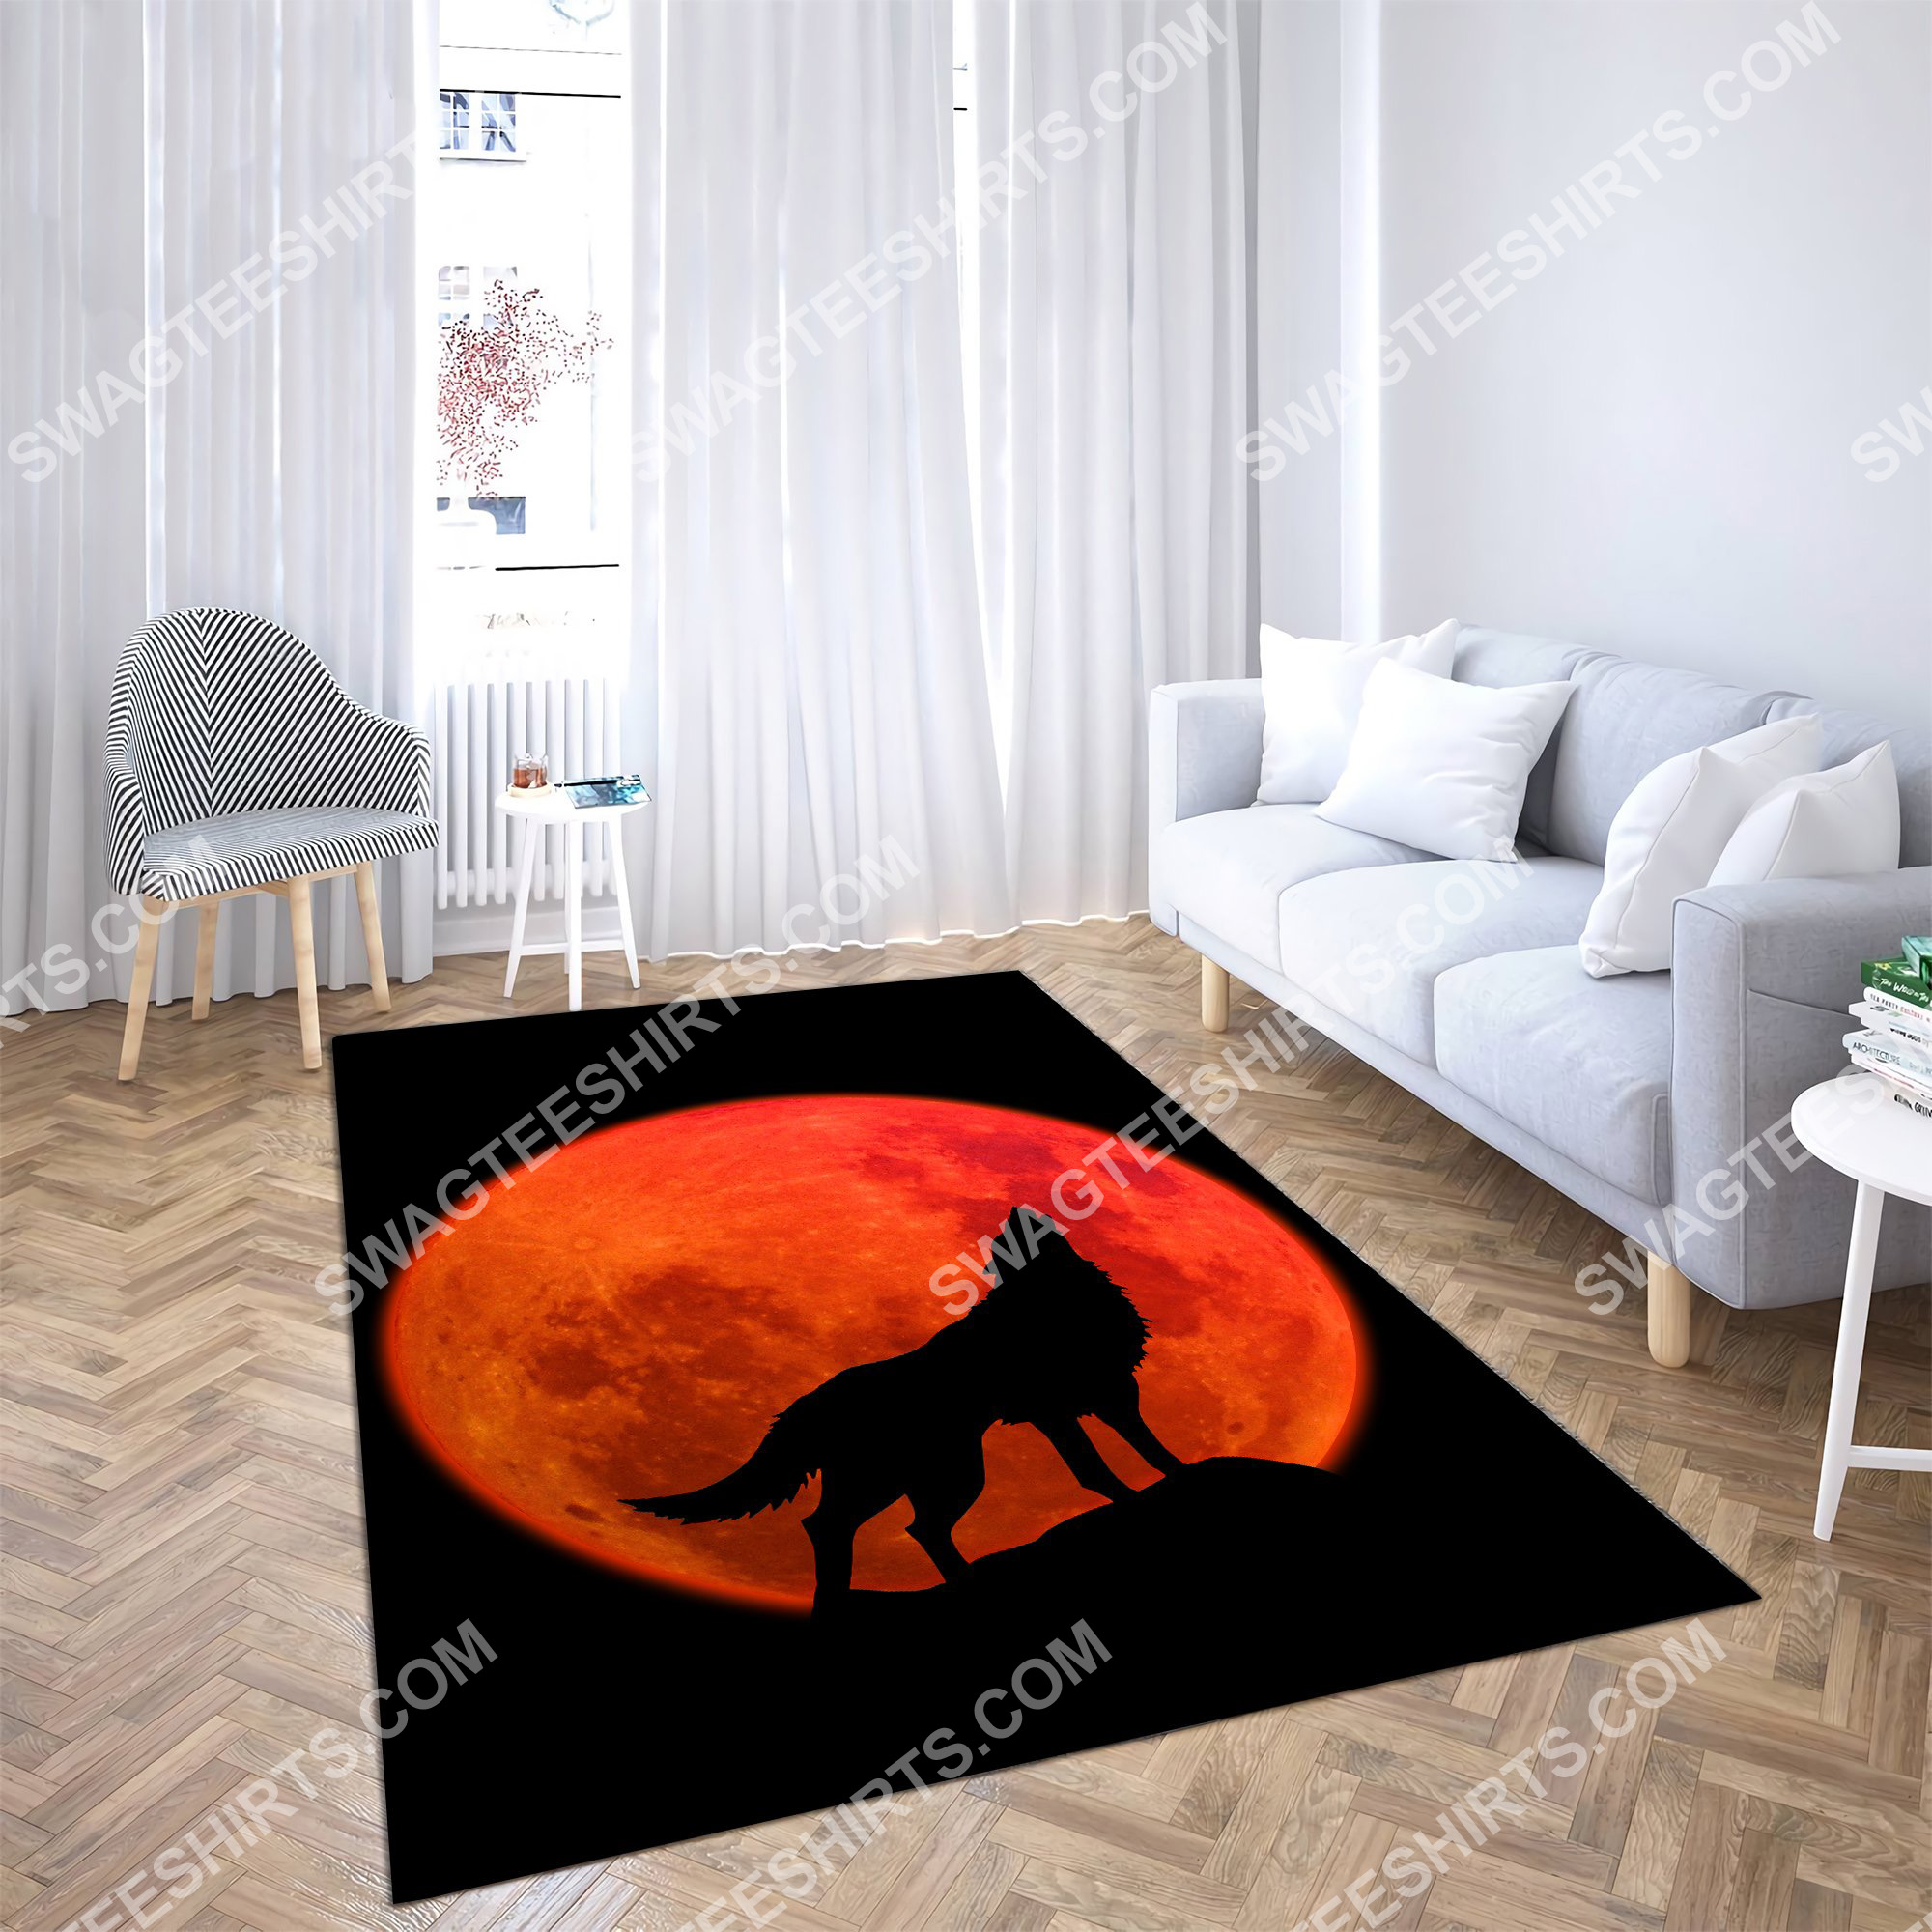 the wolf in red moon all over printed rug 3(1)